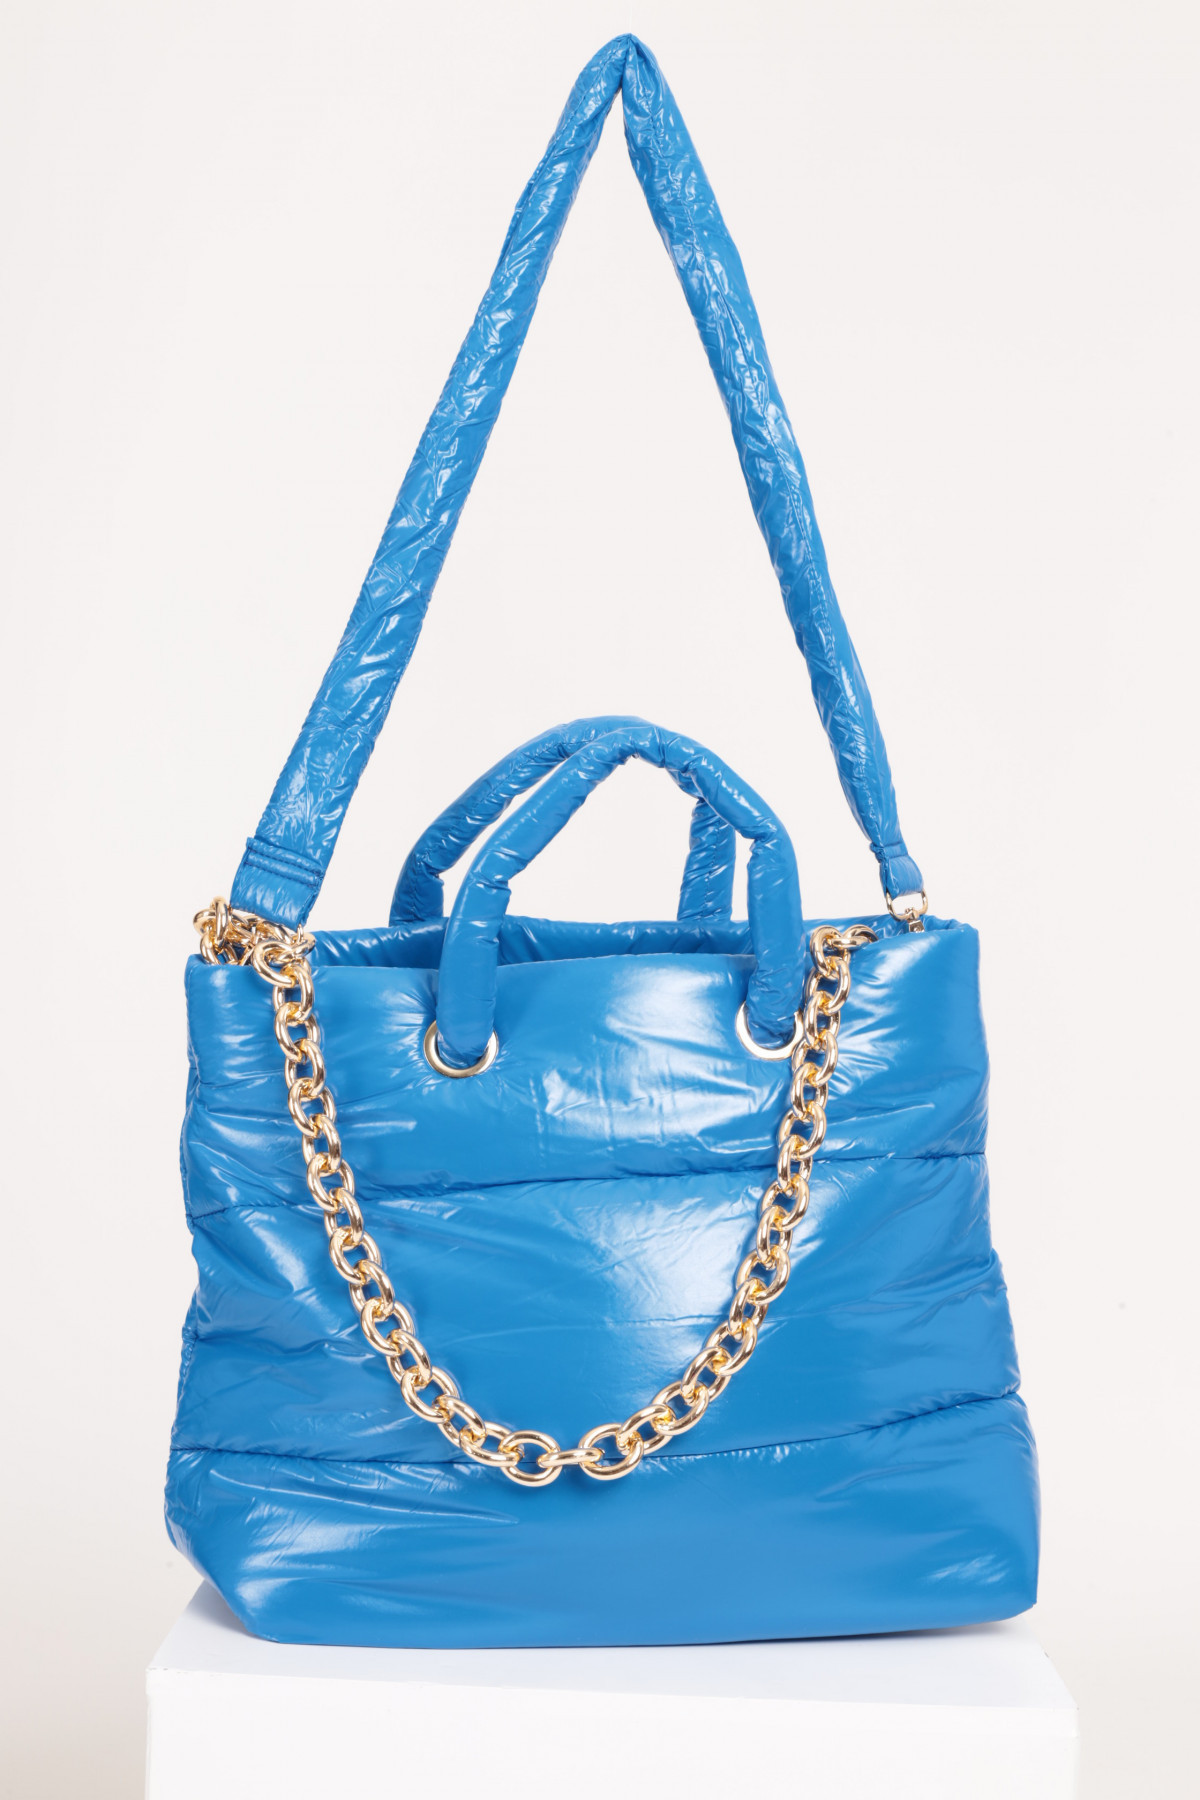 Duvet Bag with Shoulder Strap and Chain